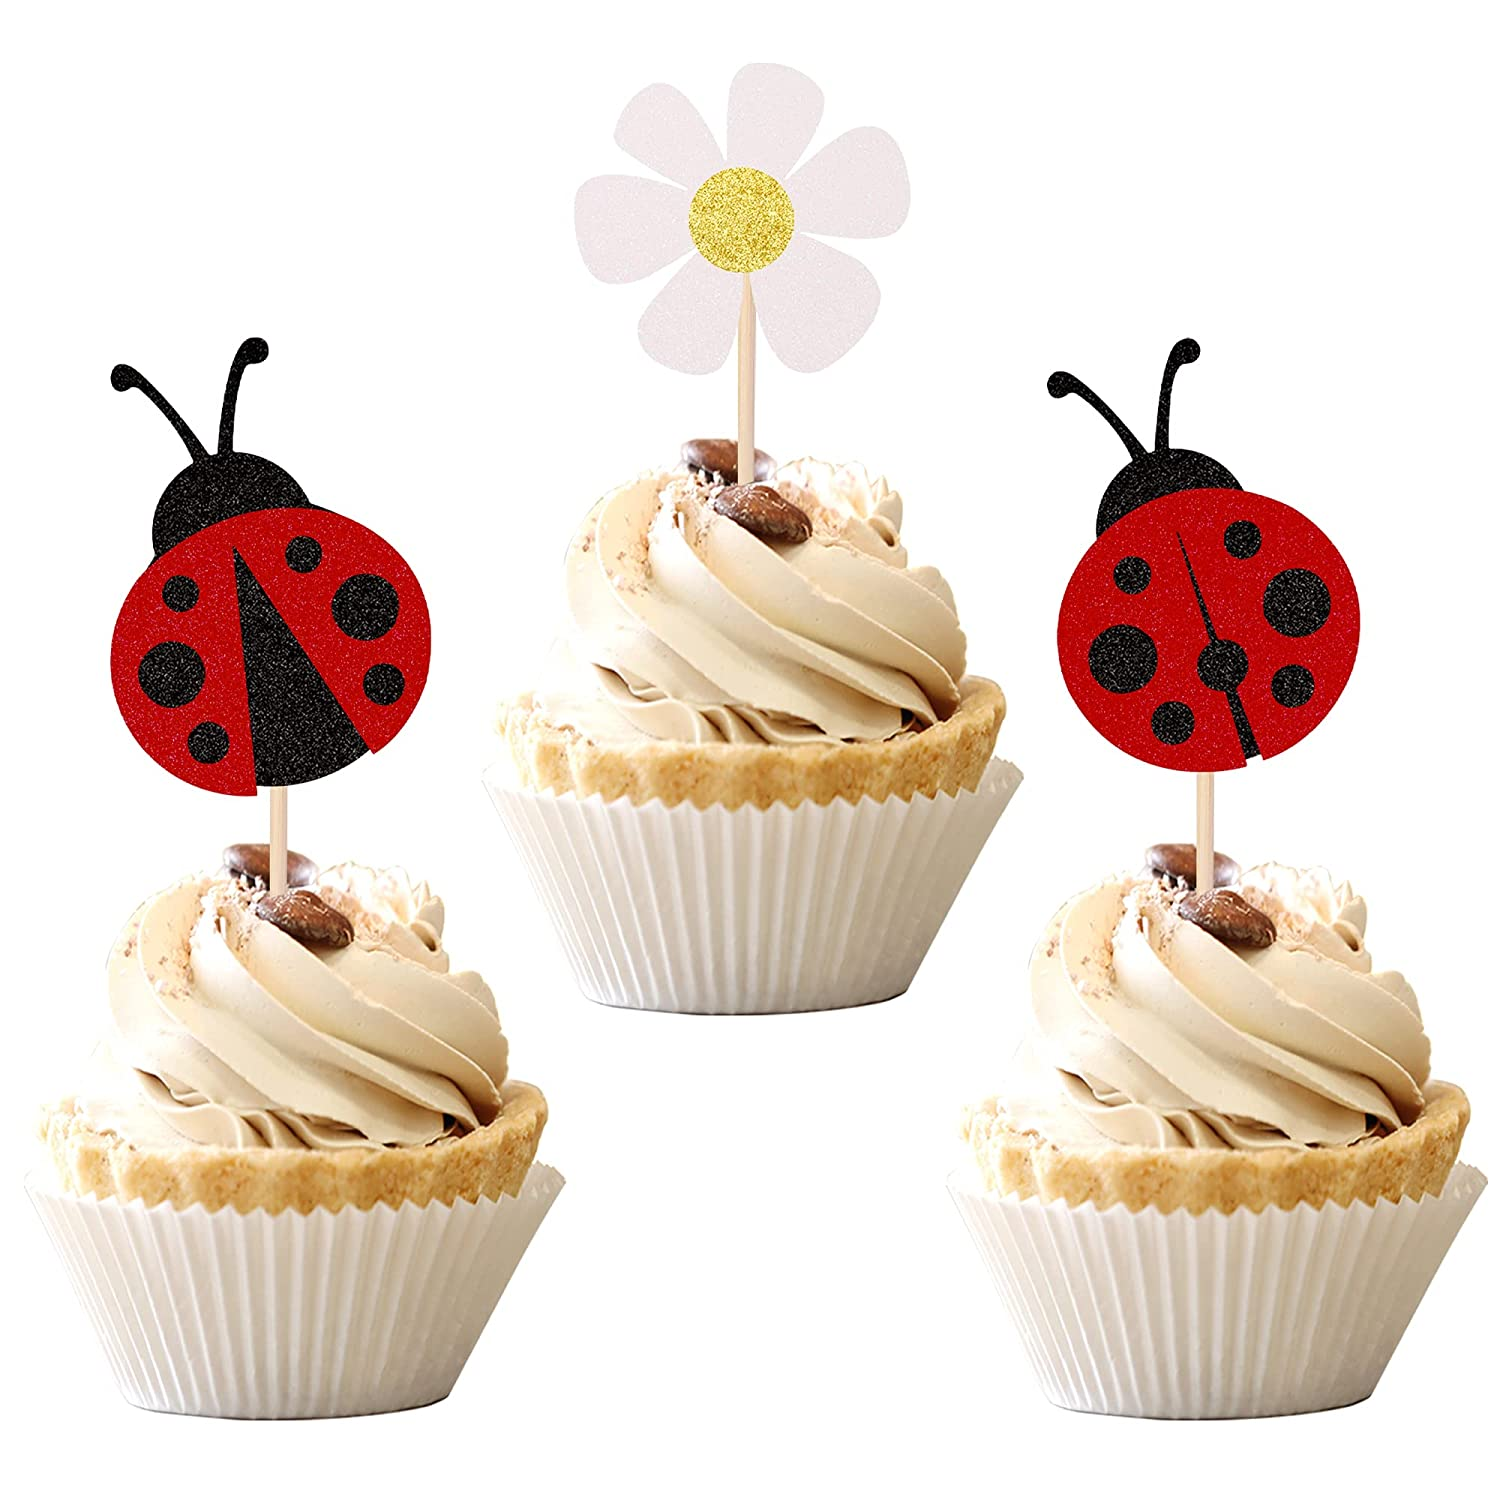 36 PCS Ladybug Cupcake Toppers 2021 P Insects Glitter price Flowers